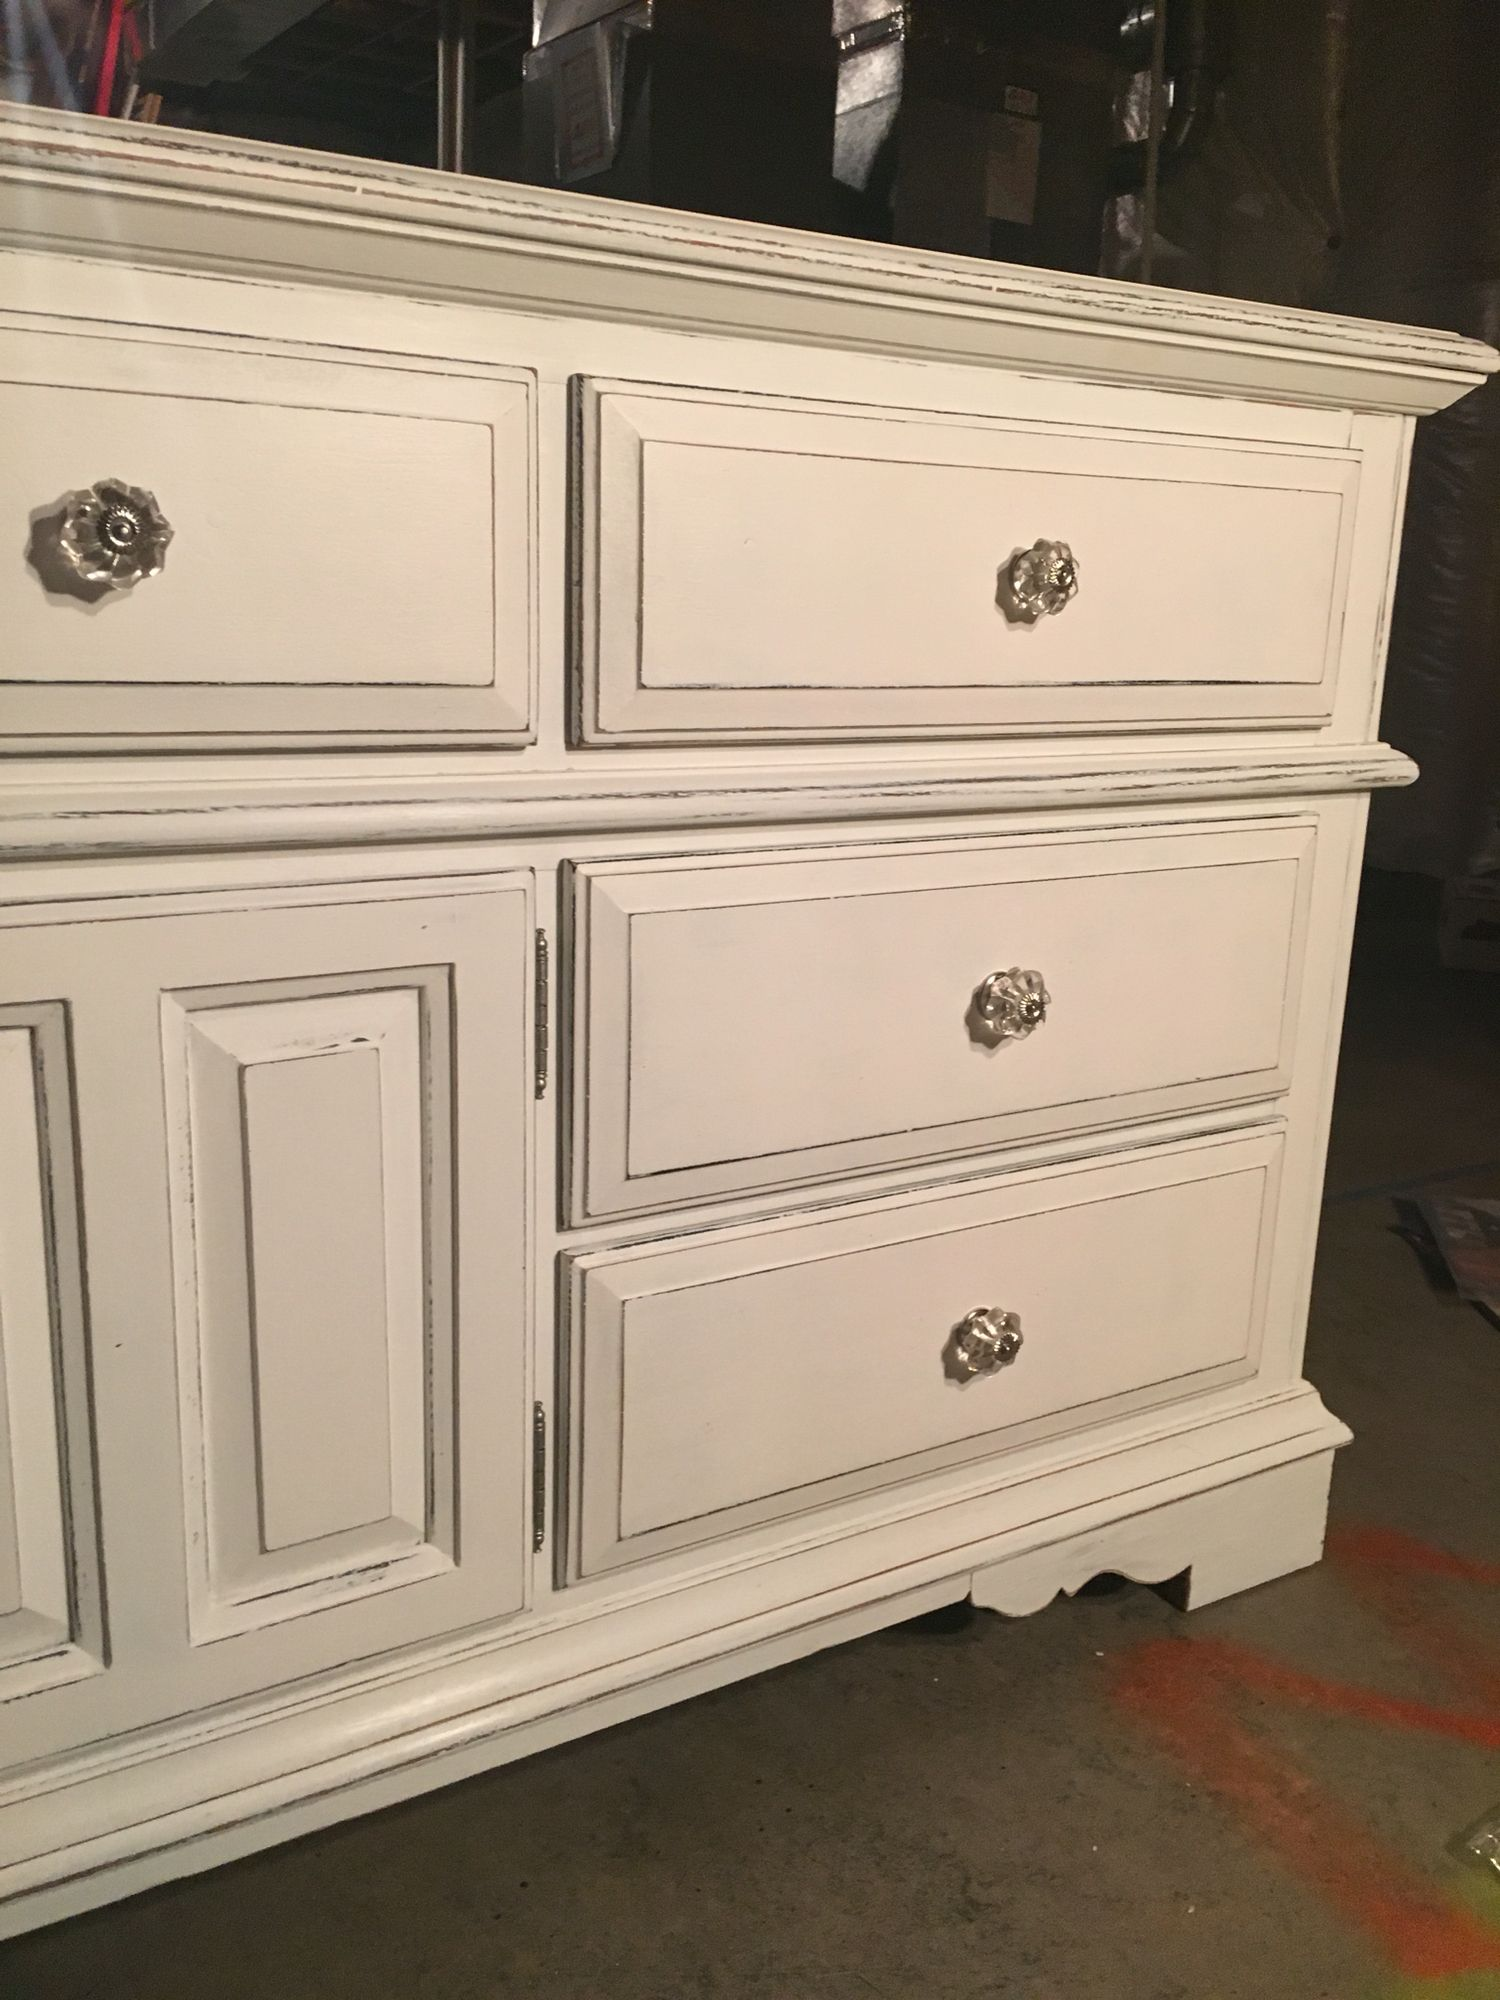 superb Old Broyhill Bedroom Furniture Part - 8: 20 year old Broyhill oak dresser painted with black chalk paint then white  chalk paint. Distressed edges to bring through the black.